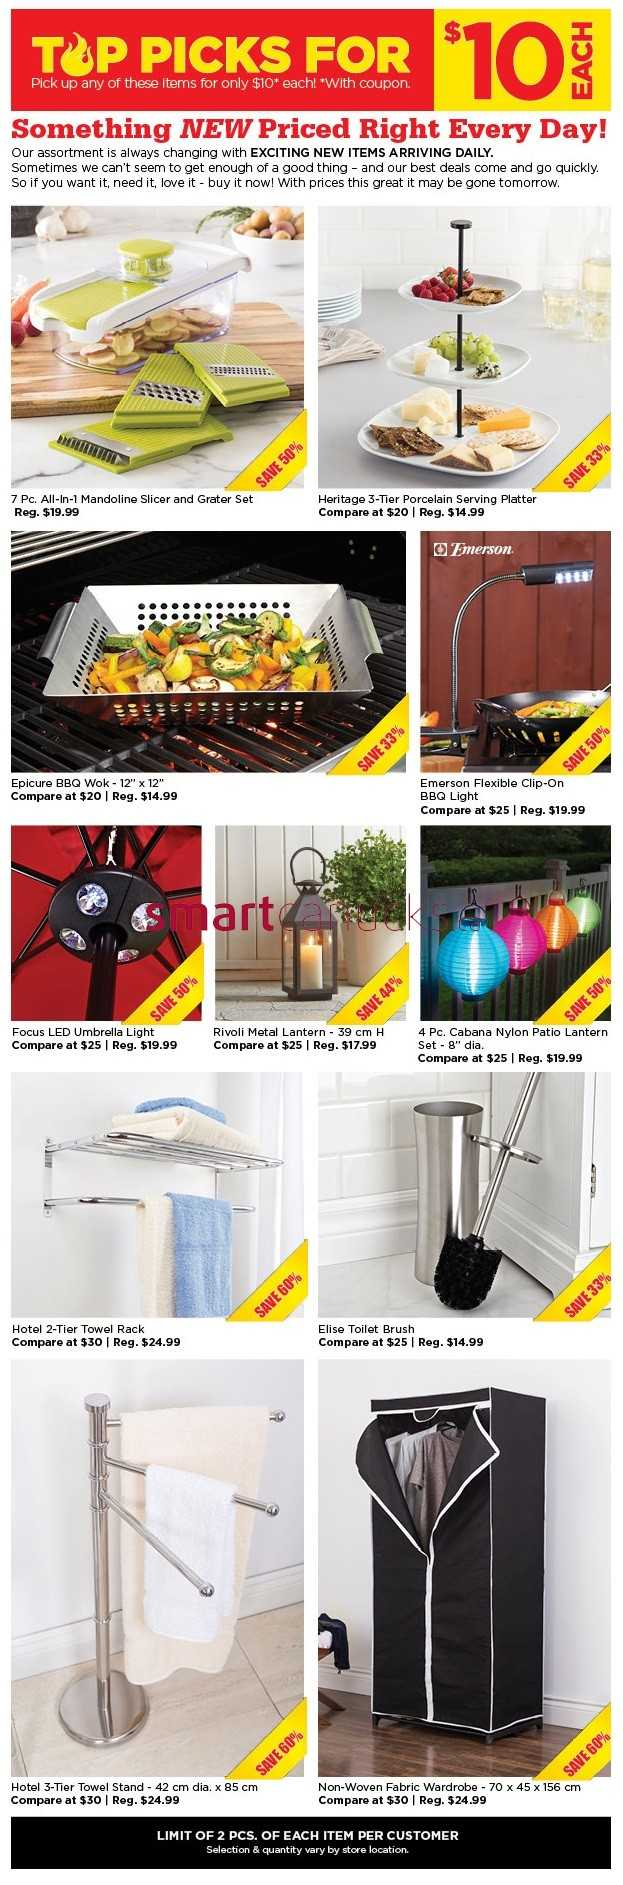 Stunning Kitchen Stuff Plus $10 Red Hot Deals July 16 to 26 623 x 1885 · 353 kB · jpeg